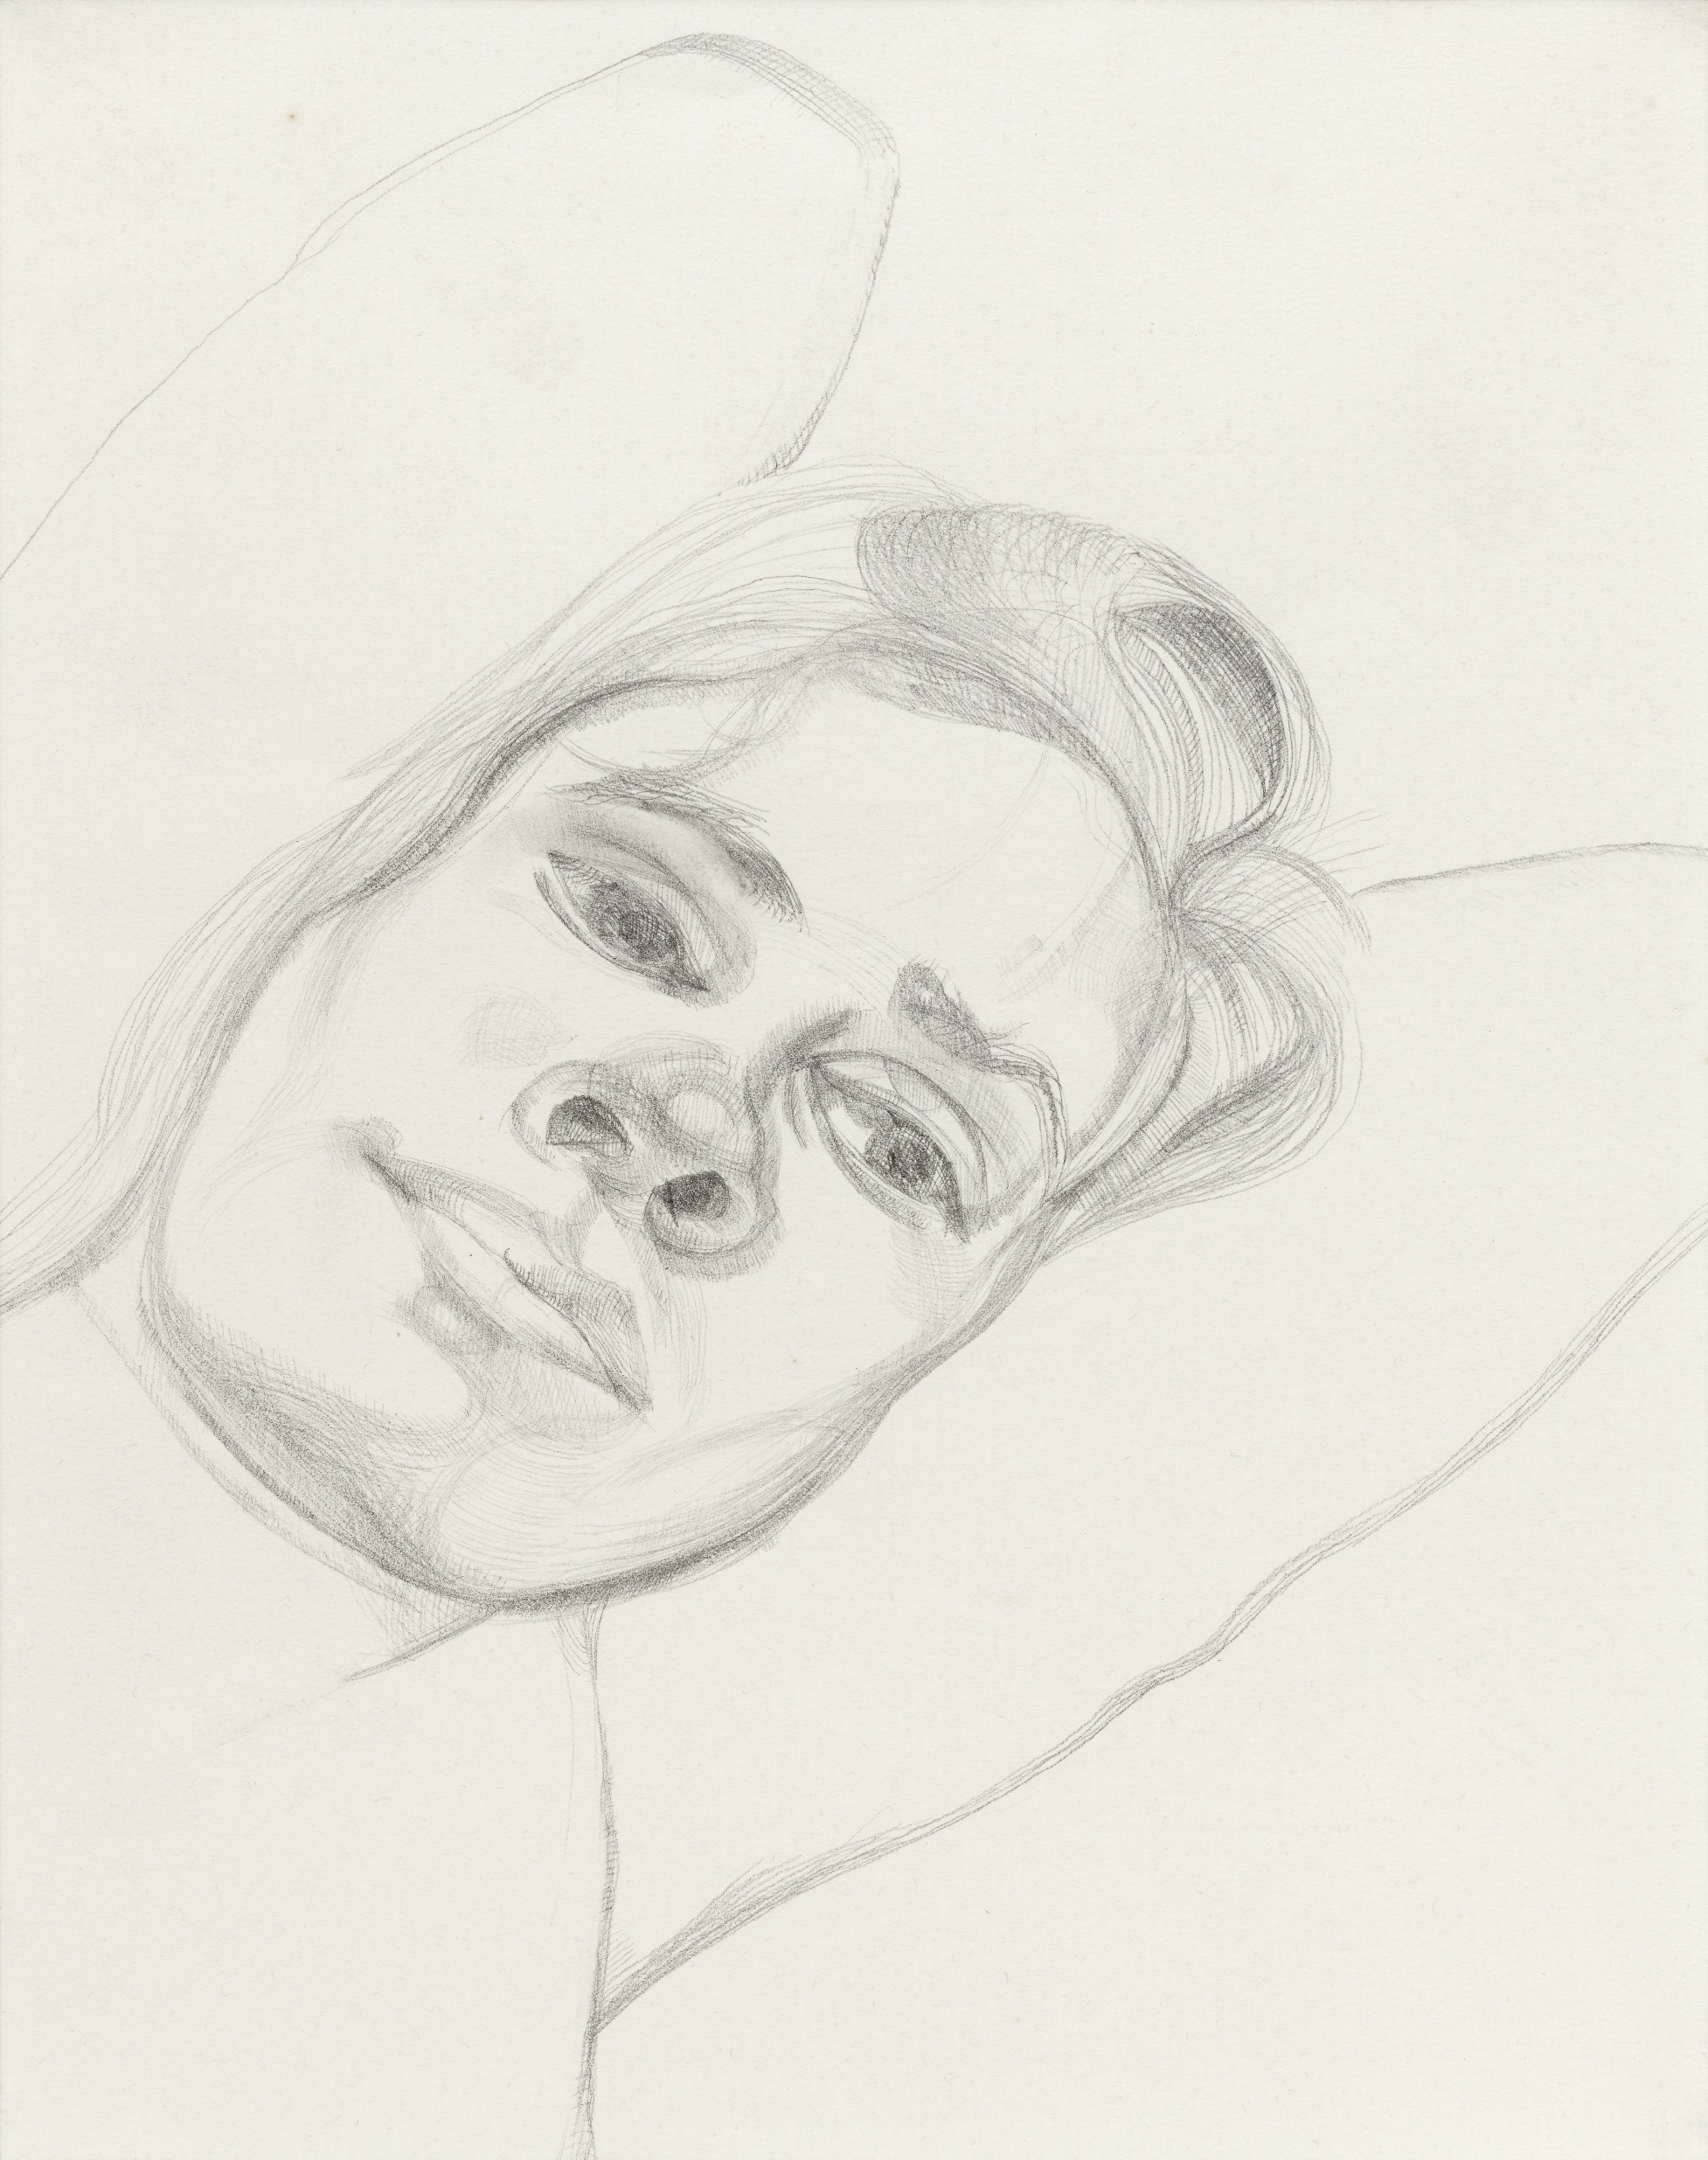 Lucian Freud Drawing of a Girl, Alice. 1974. Arts Council Collection, Southbank Centre, London © Lucian Freud Archive. All rights reserved, Bridgeman Images, 2017